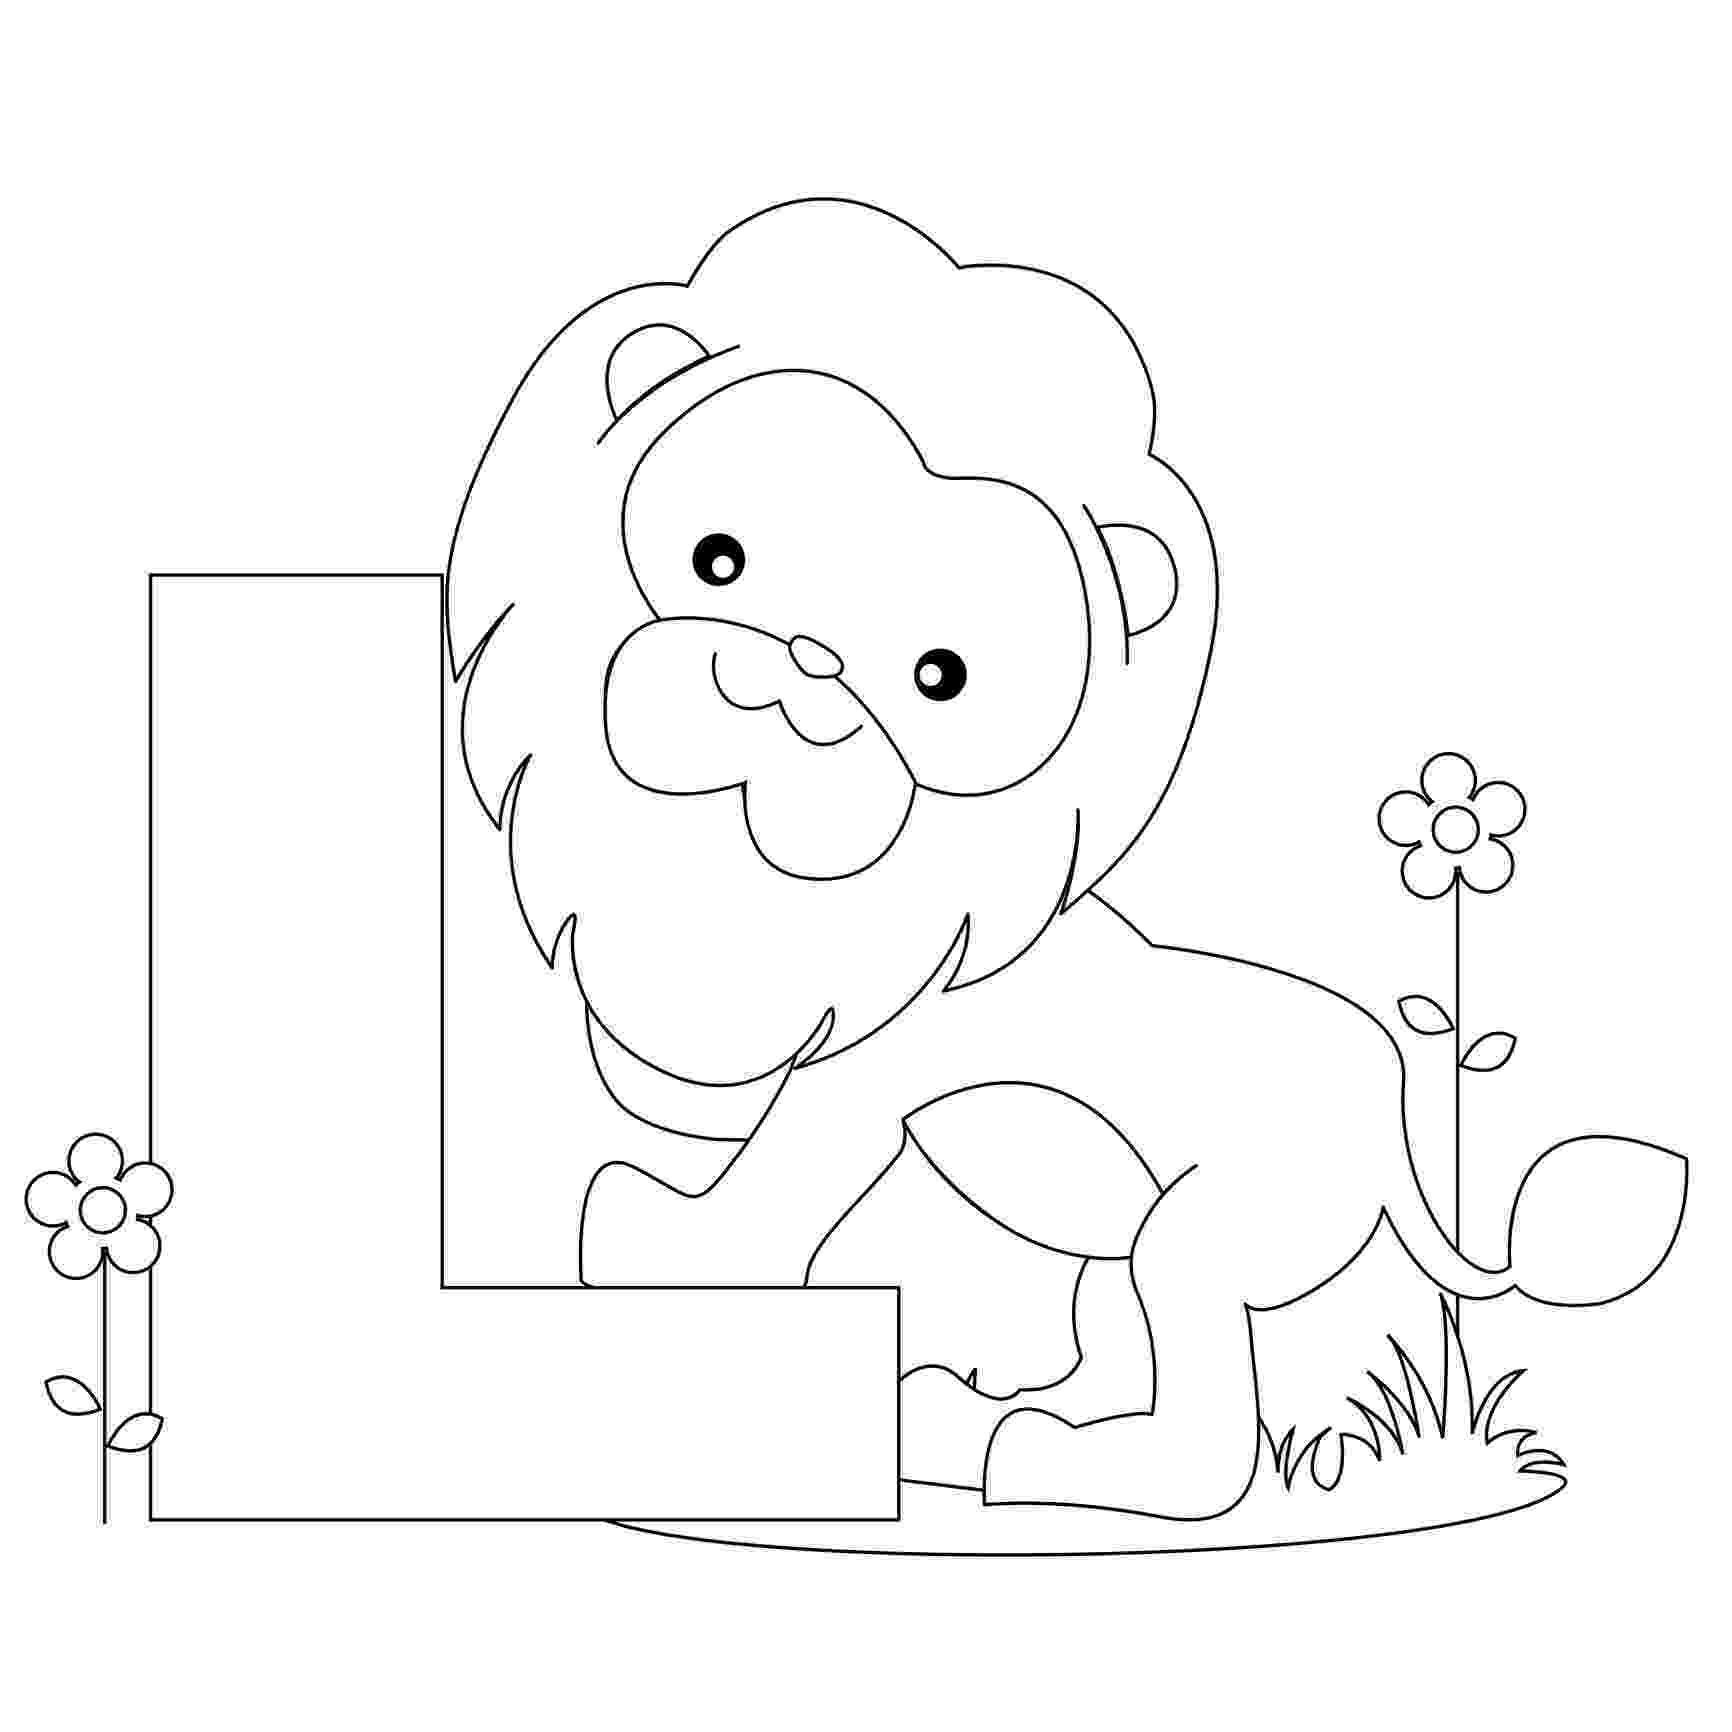 letter t animal coloring pages printable coloring pages uppercase letters animals animal coloring pages t letter